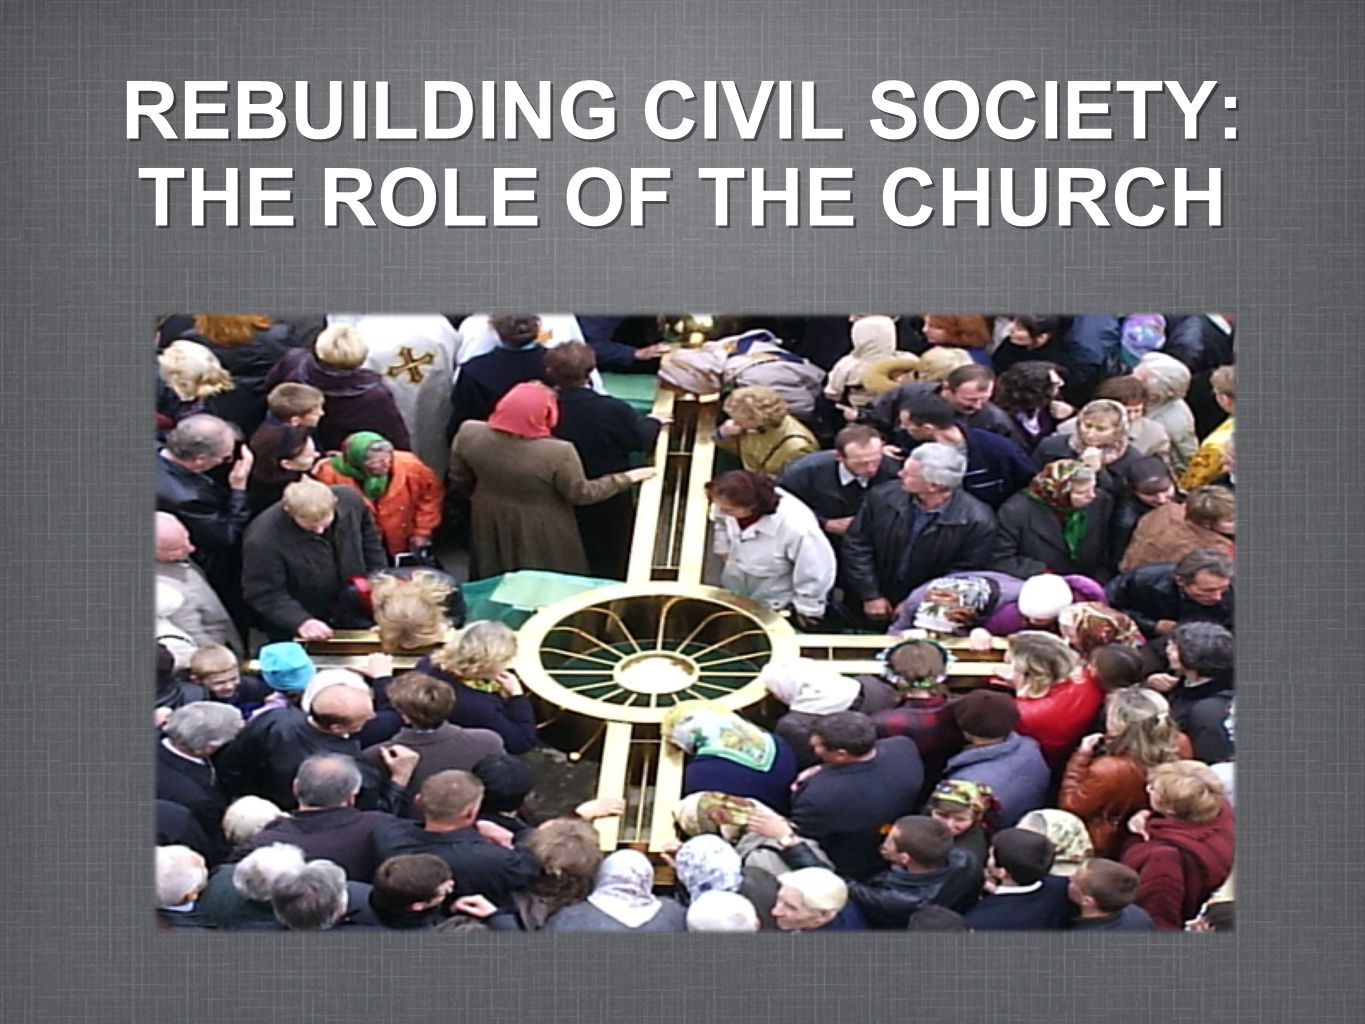 REBUILDING CIVIL SOCIETY: THE ROLE OF THE CHURCH